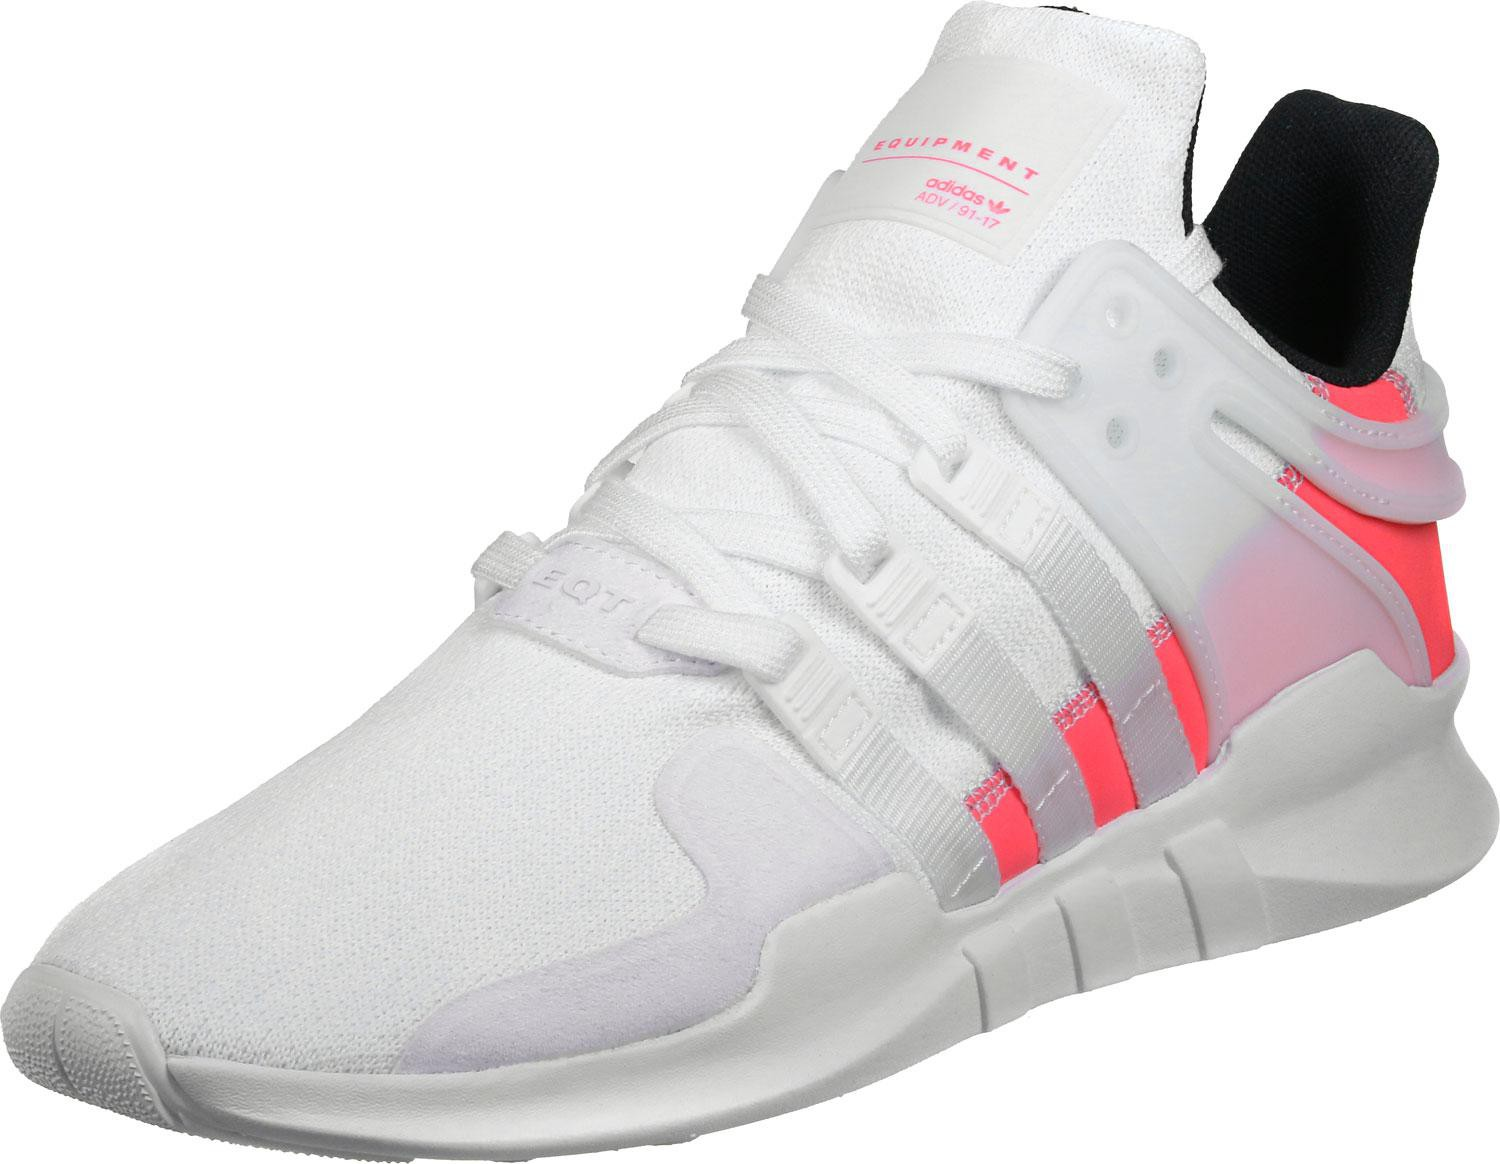 Adidas EQT Support ADV Low Top Sneaker günstig kaufen